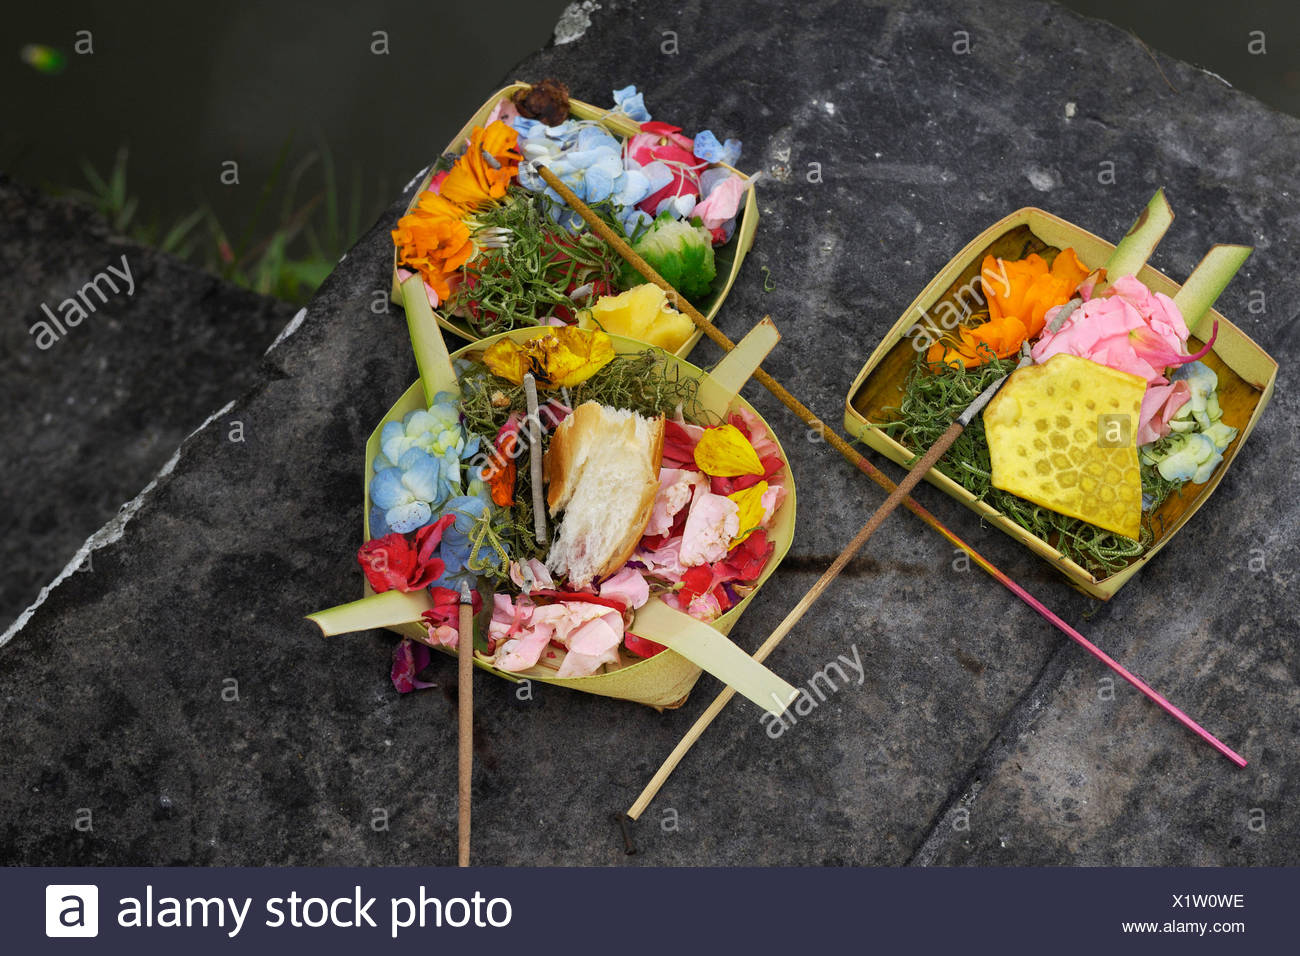 Sacrifical offerings to the gods, near Ubud, Indonesia - Stock Image